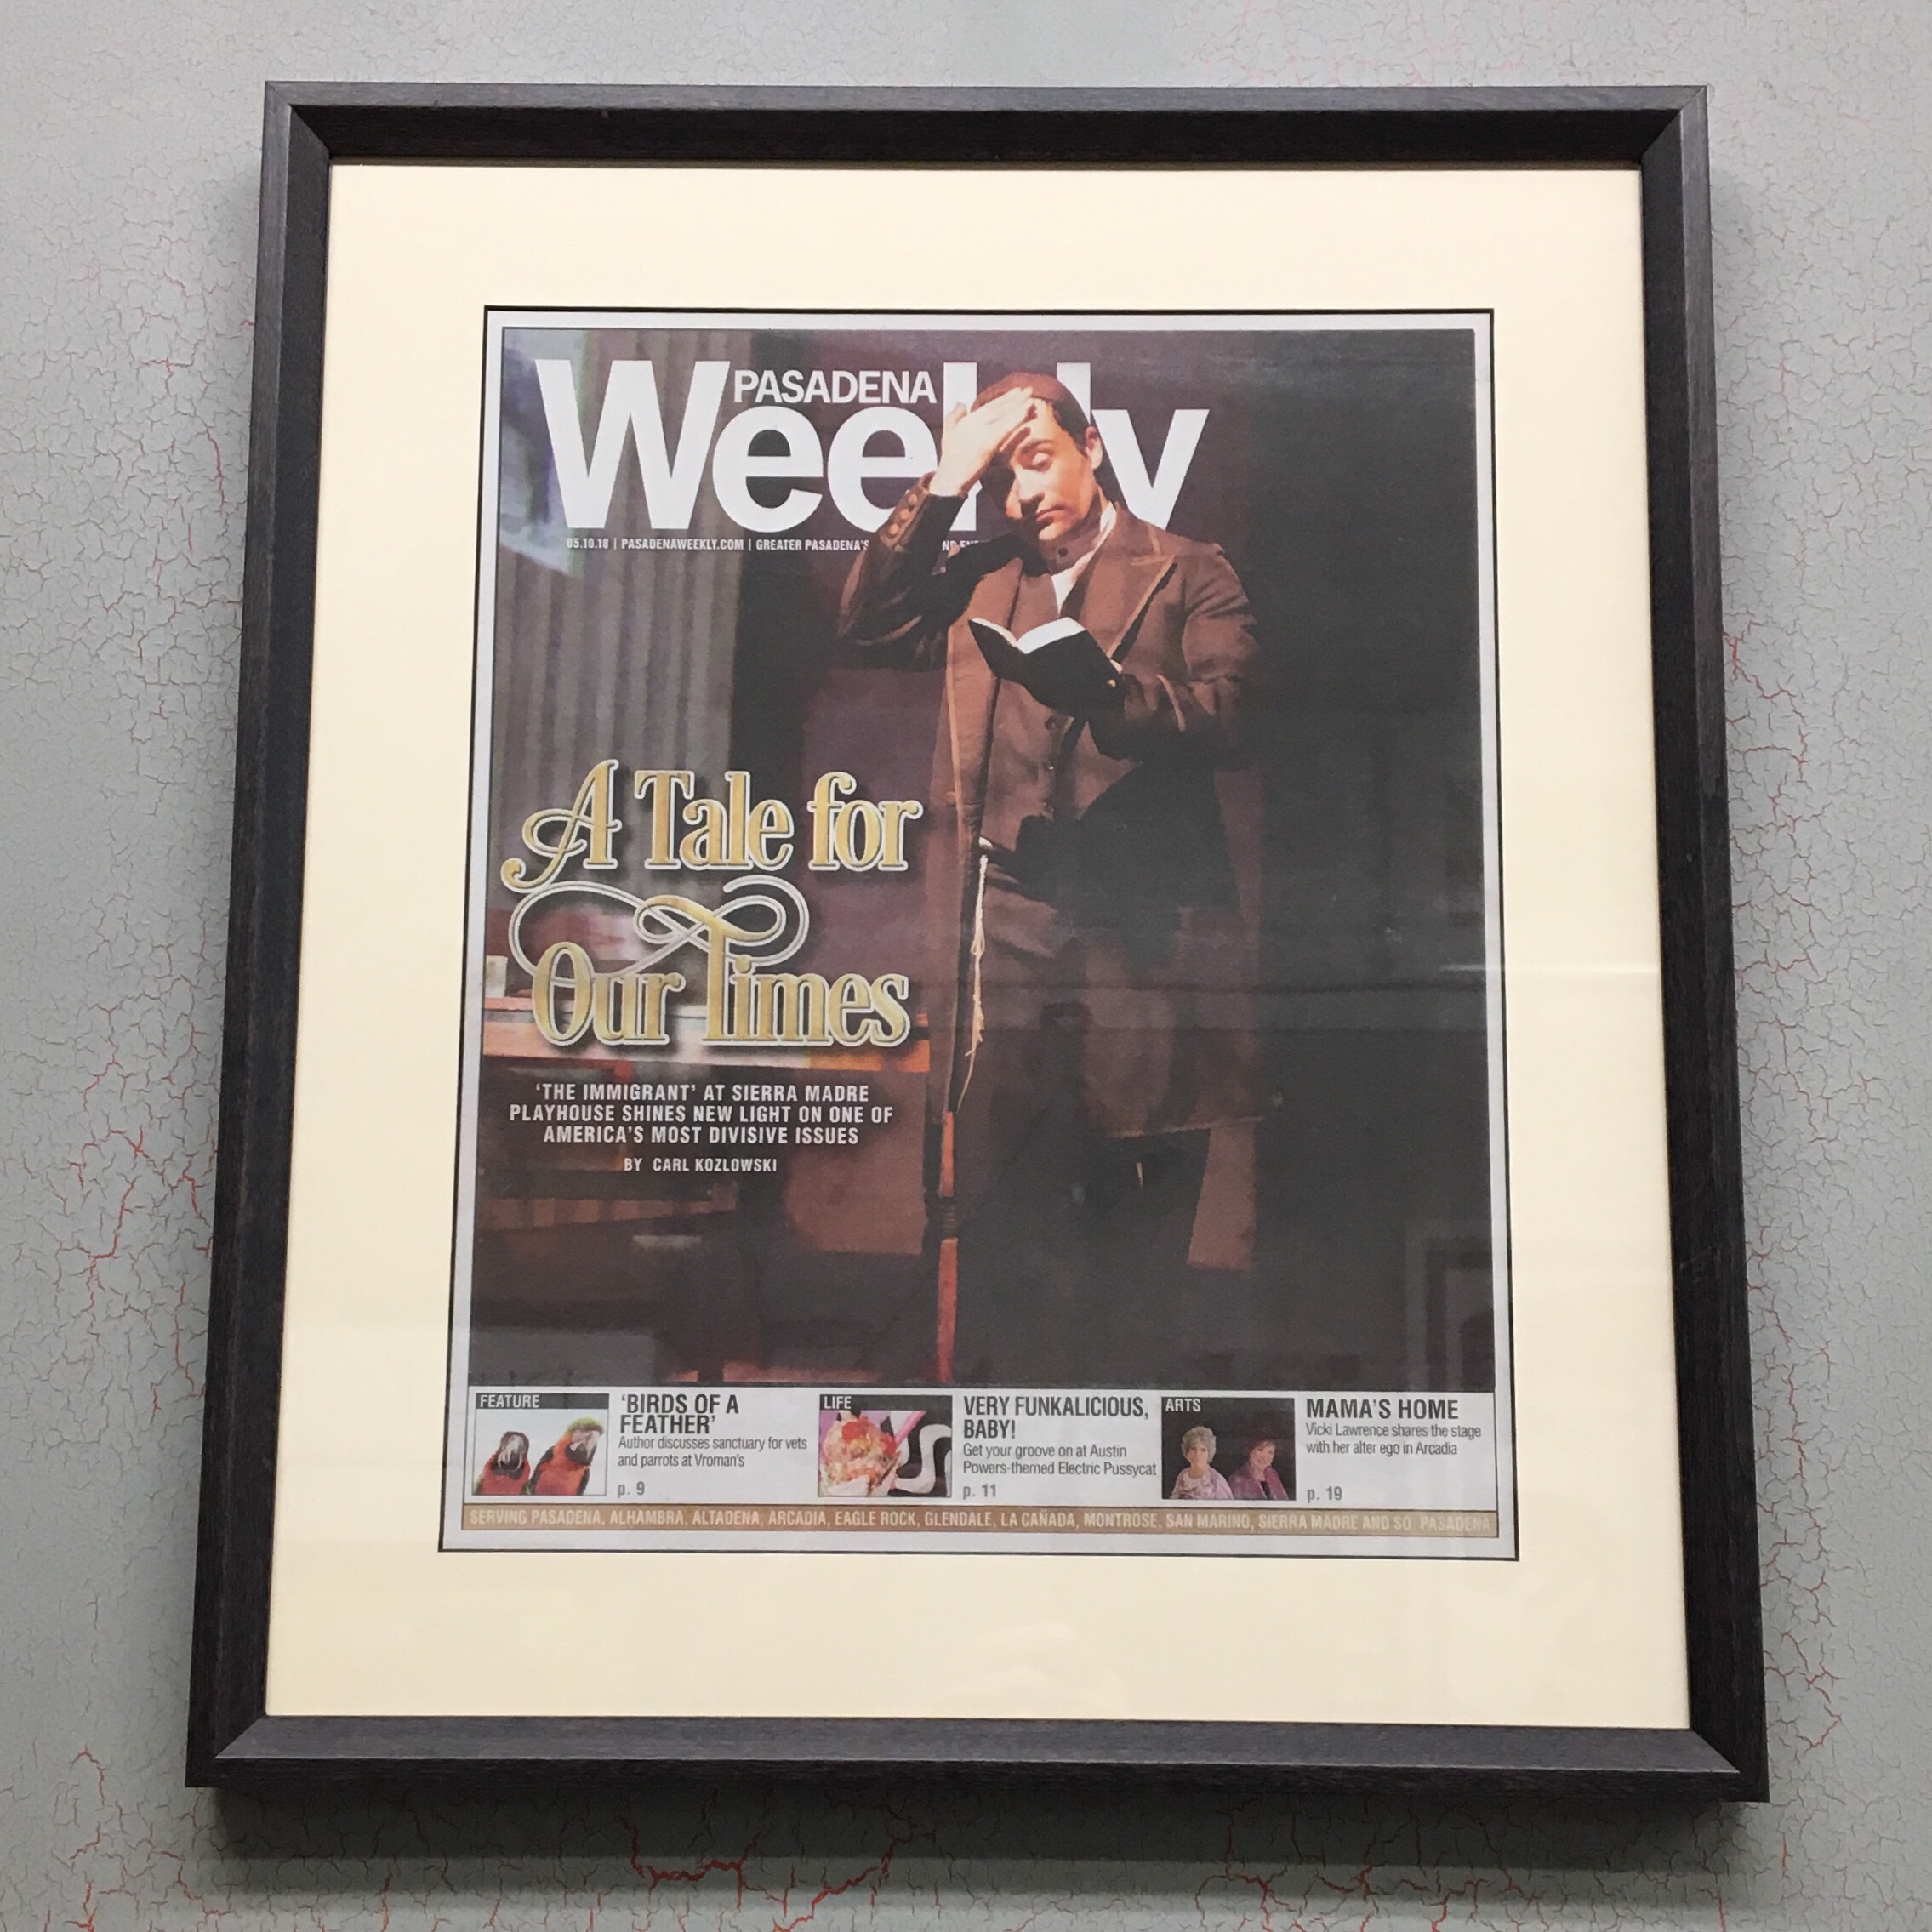 Featured in your local weekly paper? Get it custom framed, and take a bow! We located in Keswick Village (Glenside - 19038), and serve the Philadelphia area.